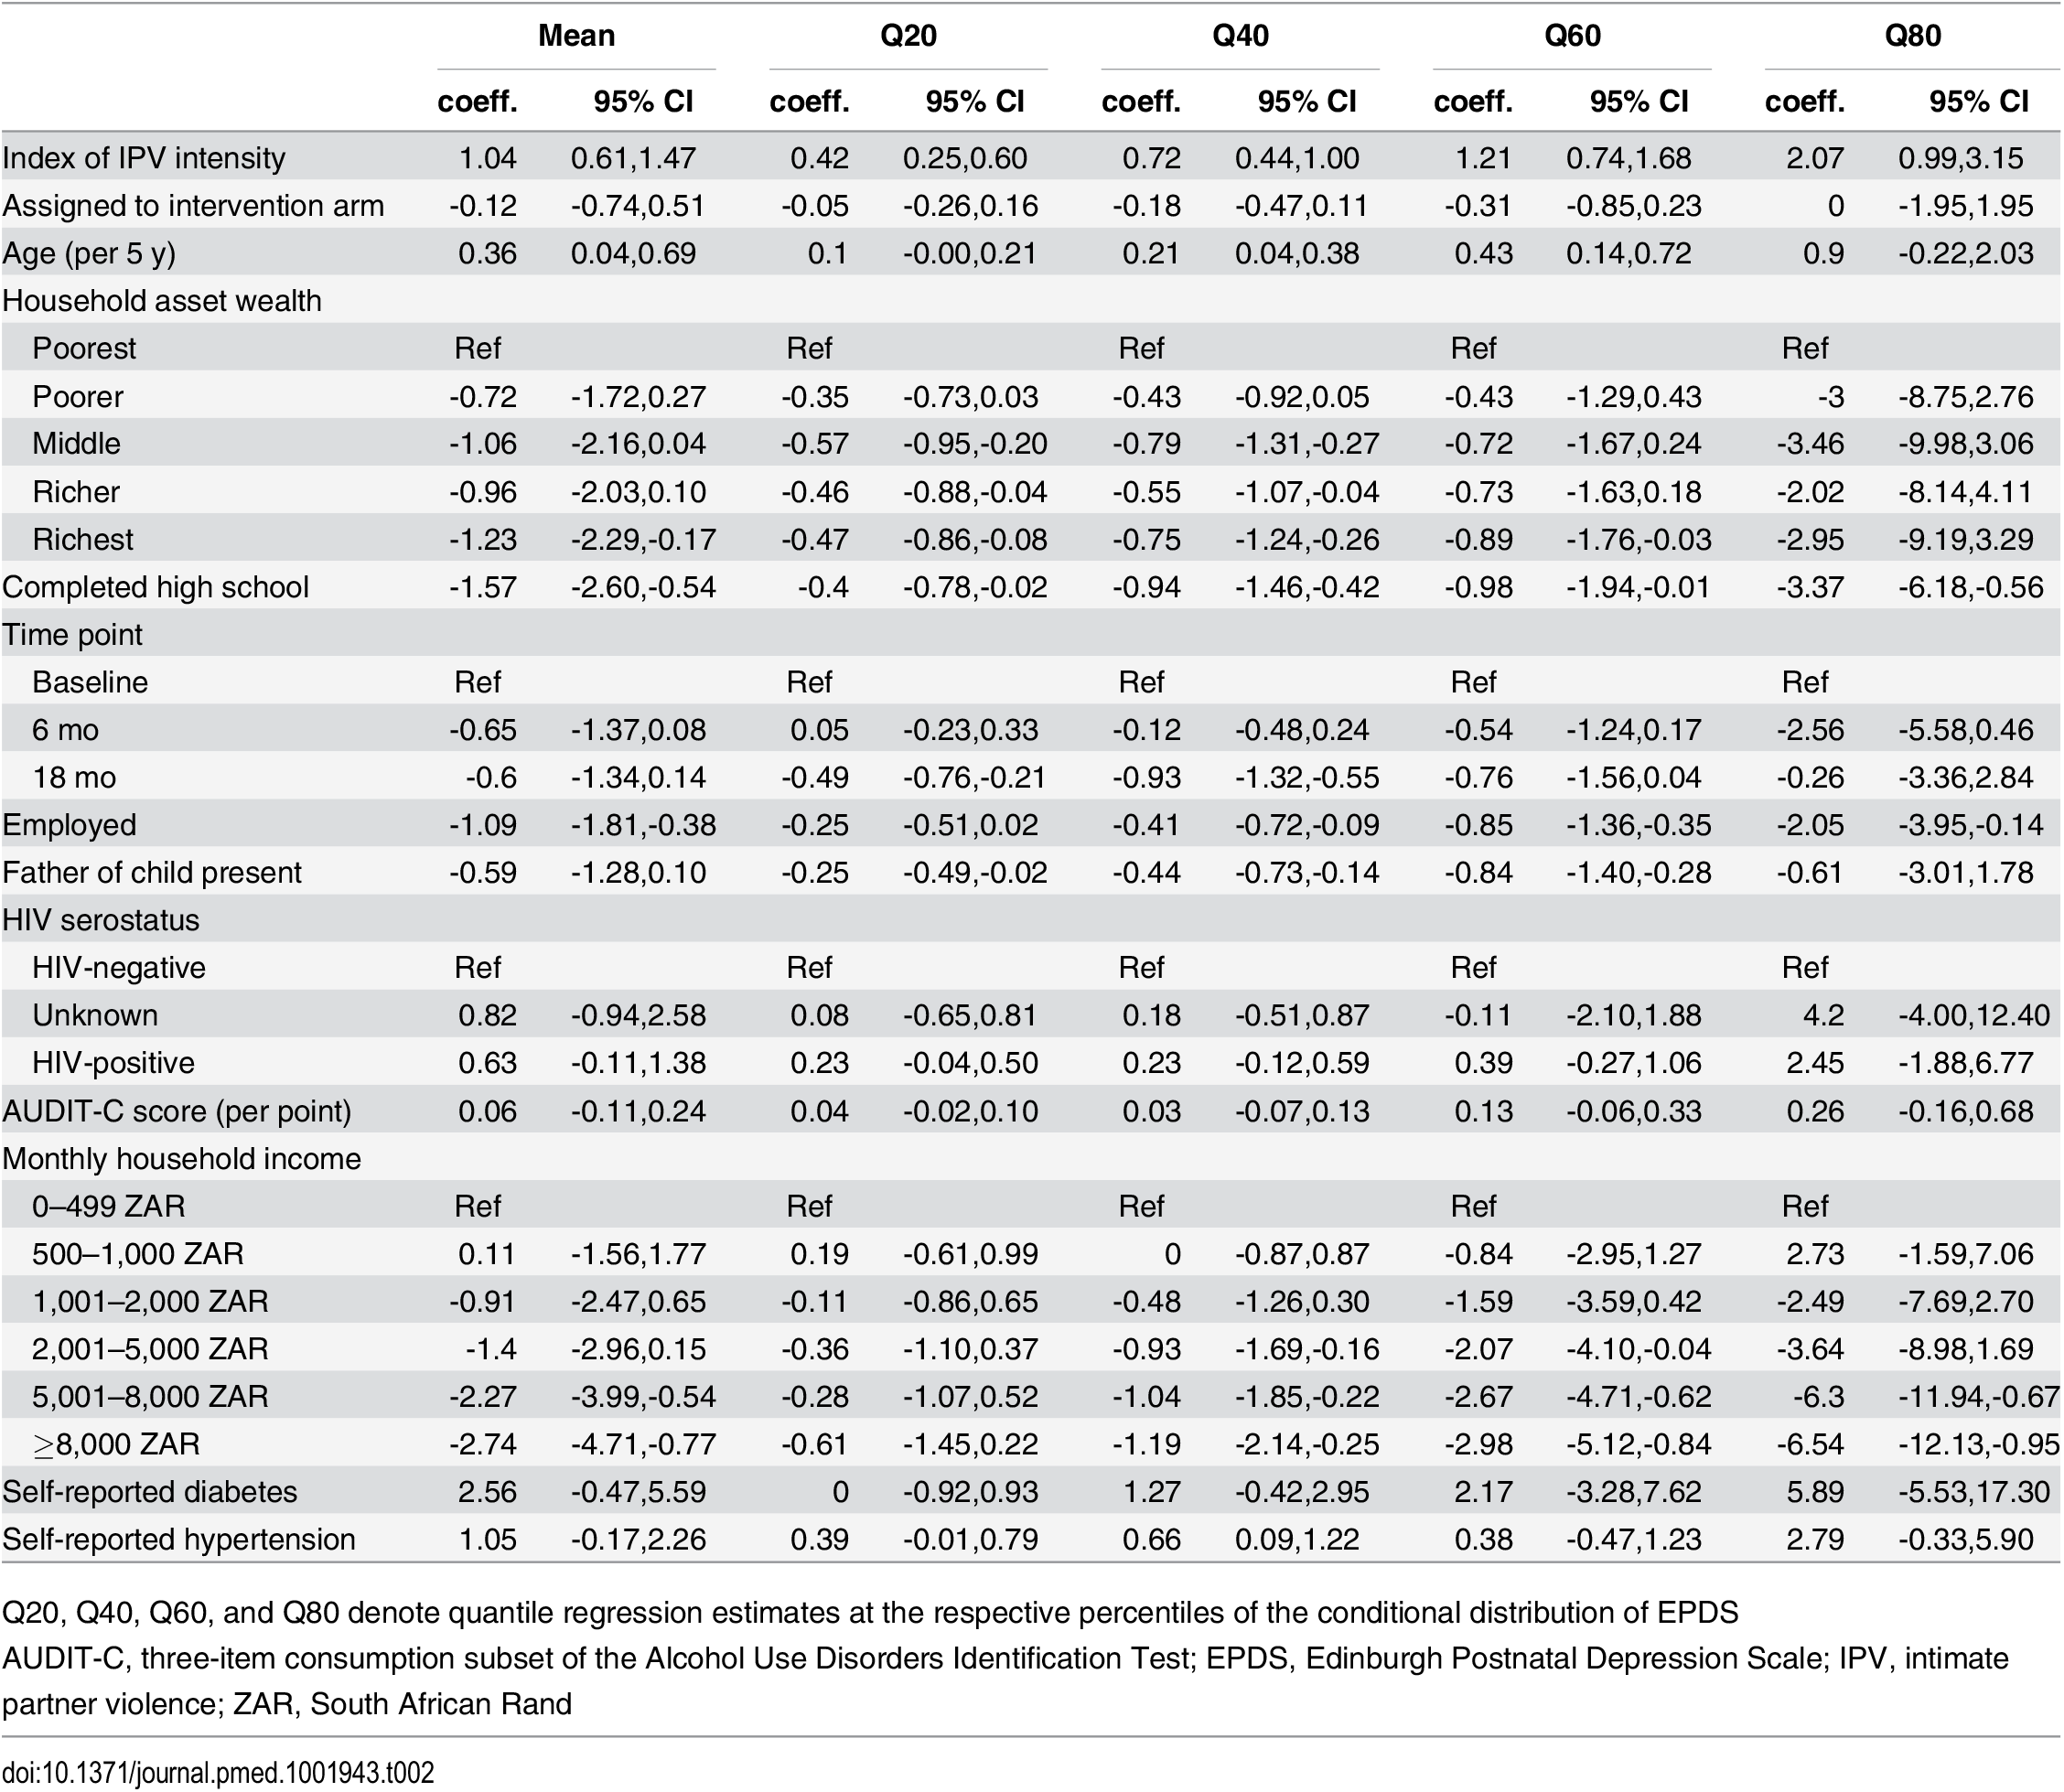 Association between depression symptom severity and lagged intensity of intimate partner violence.